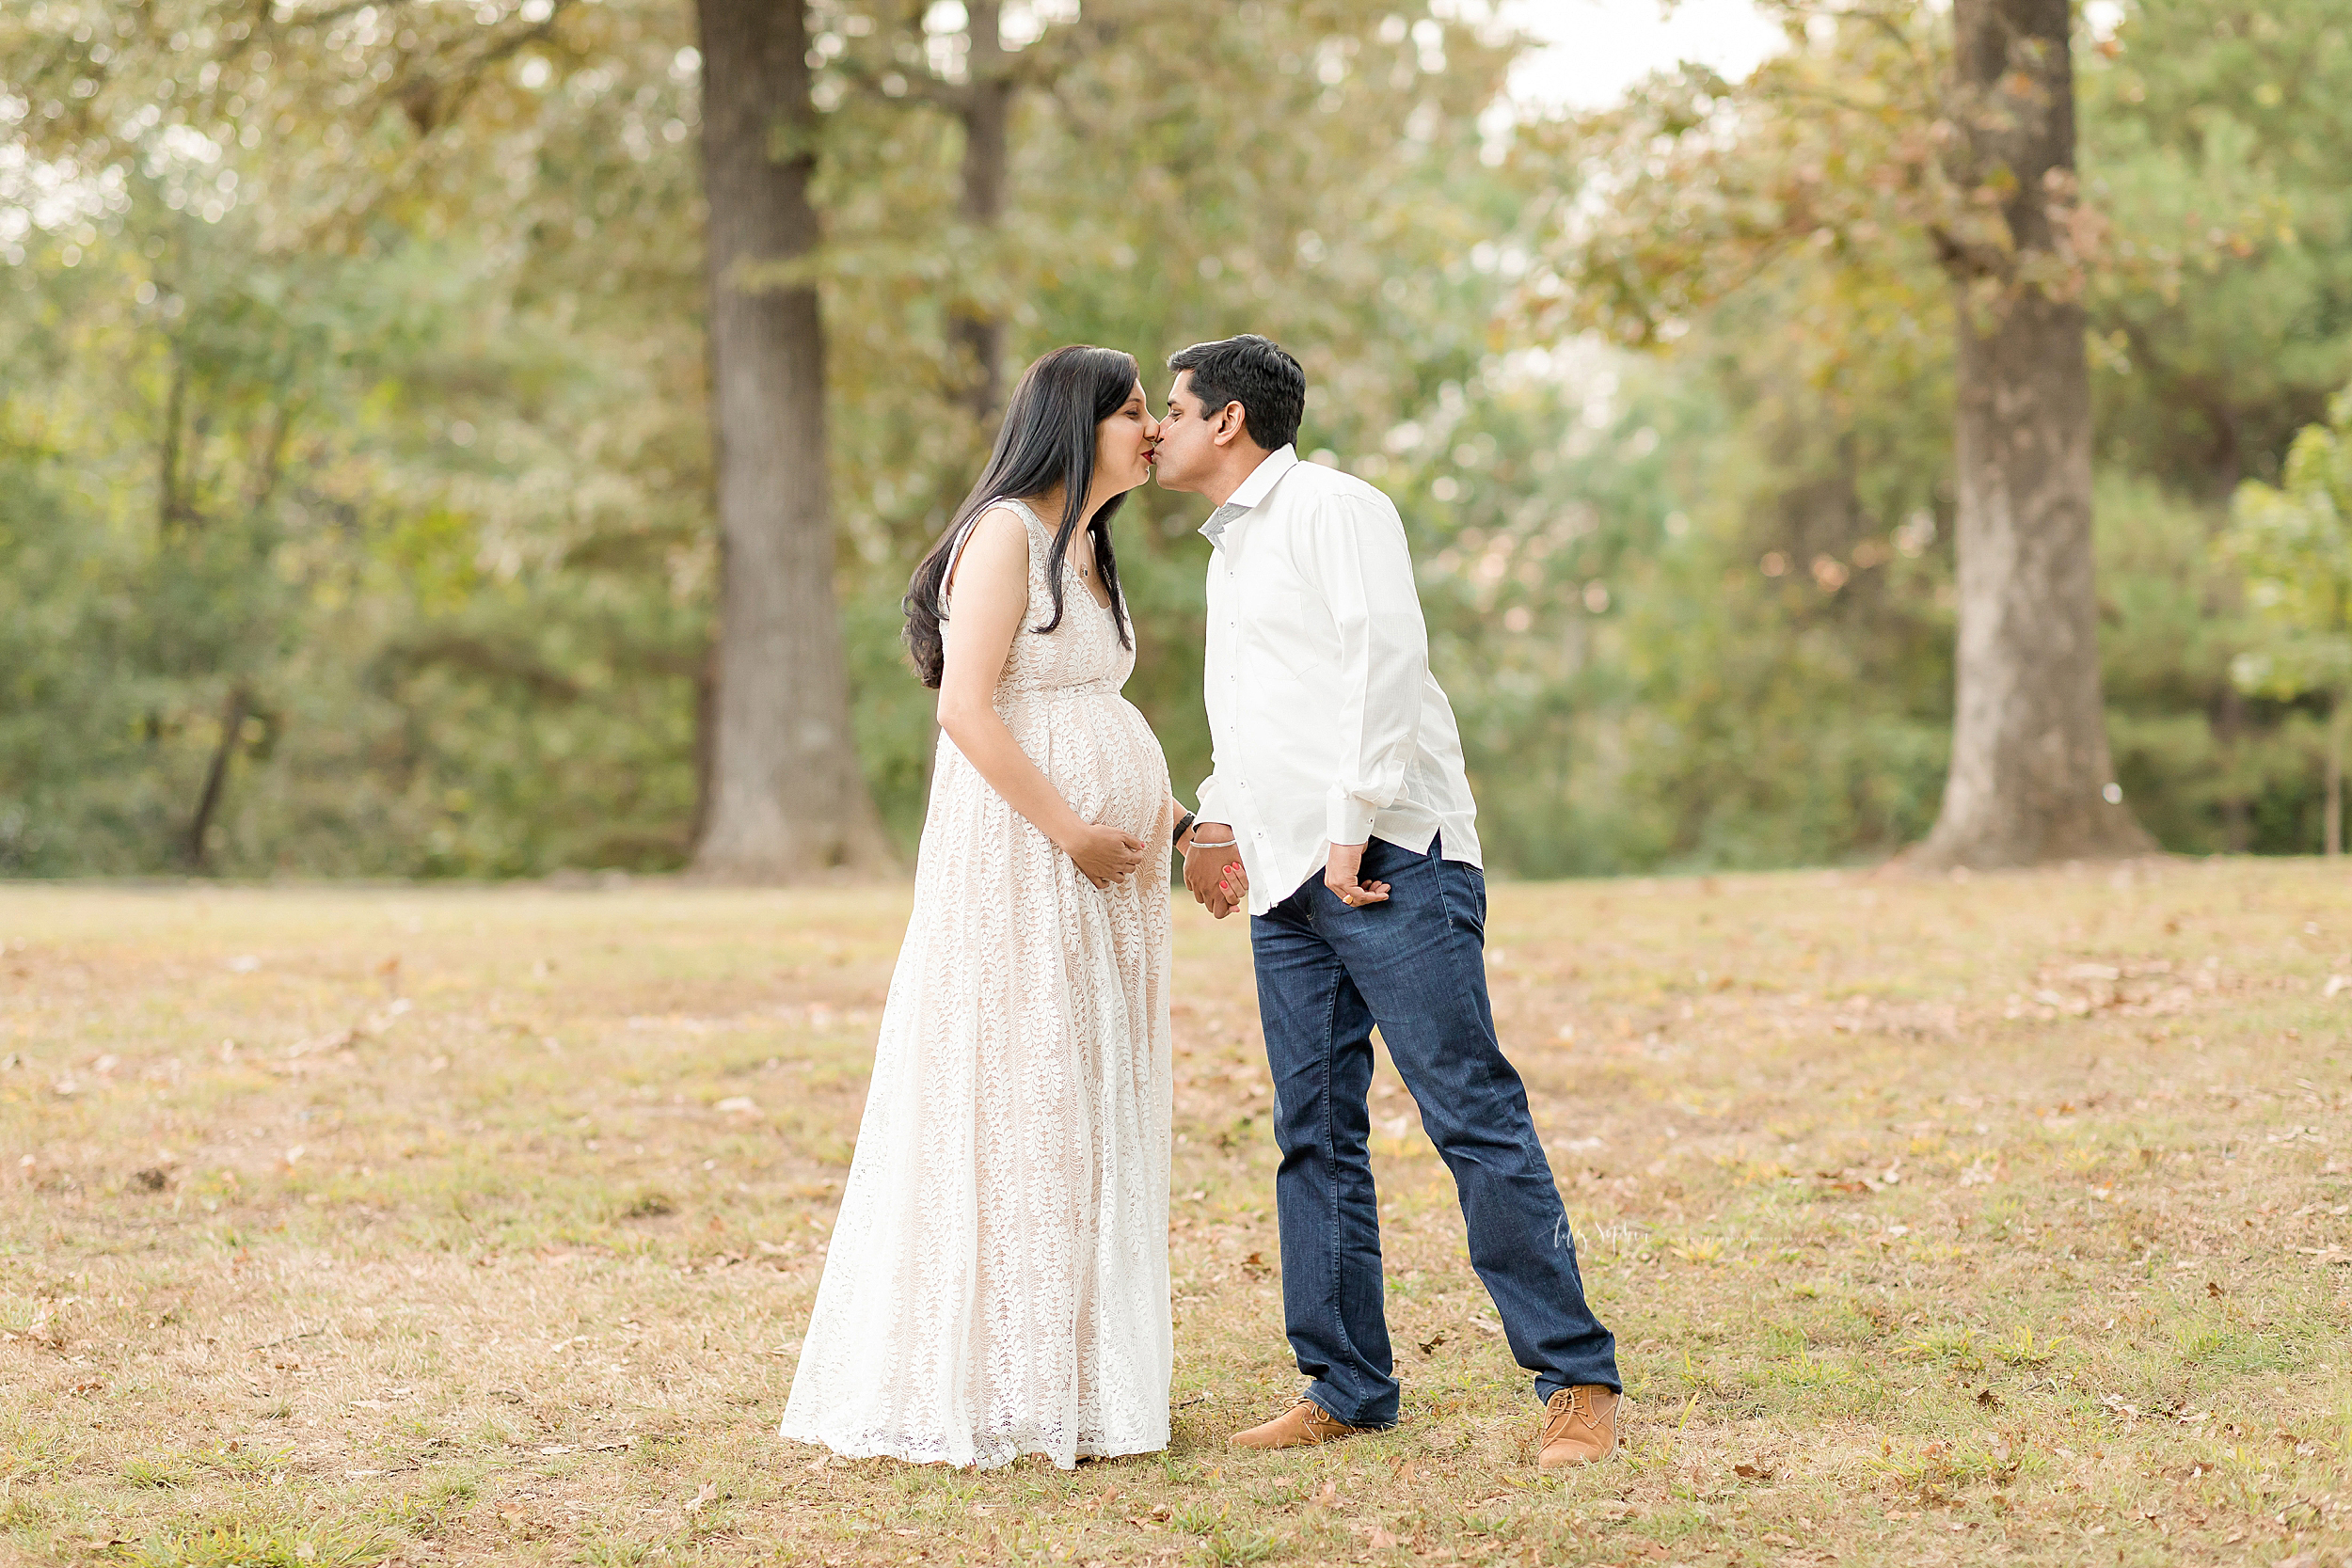 atlanta-midtown-lawrenceville-decatur-lily-sophia-photography-photographer-indian-couple-maternity-photos-expecting-baby-girl_0190.jpg